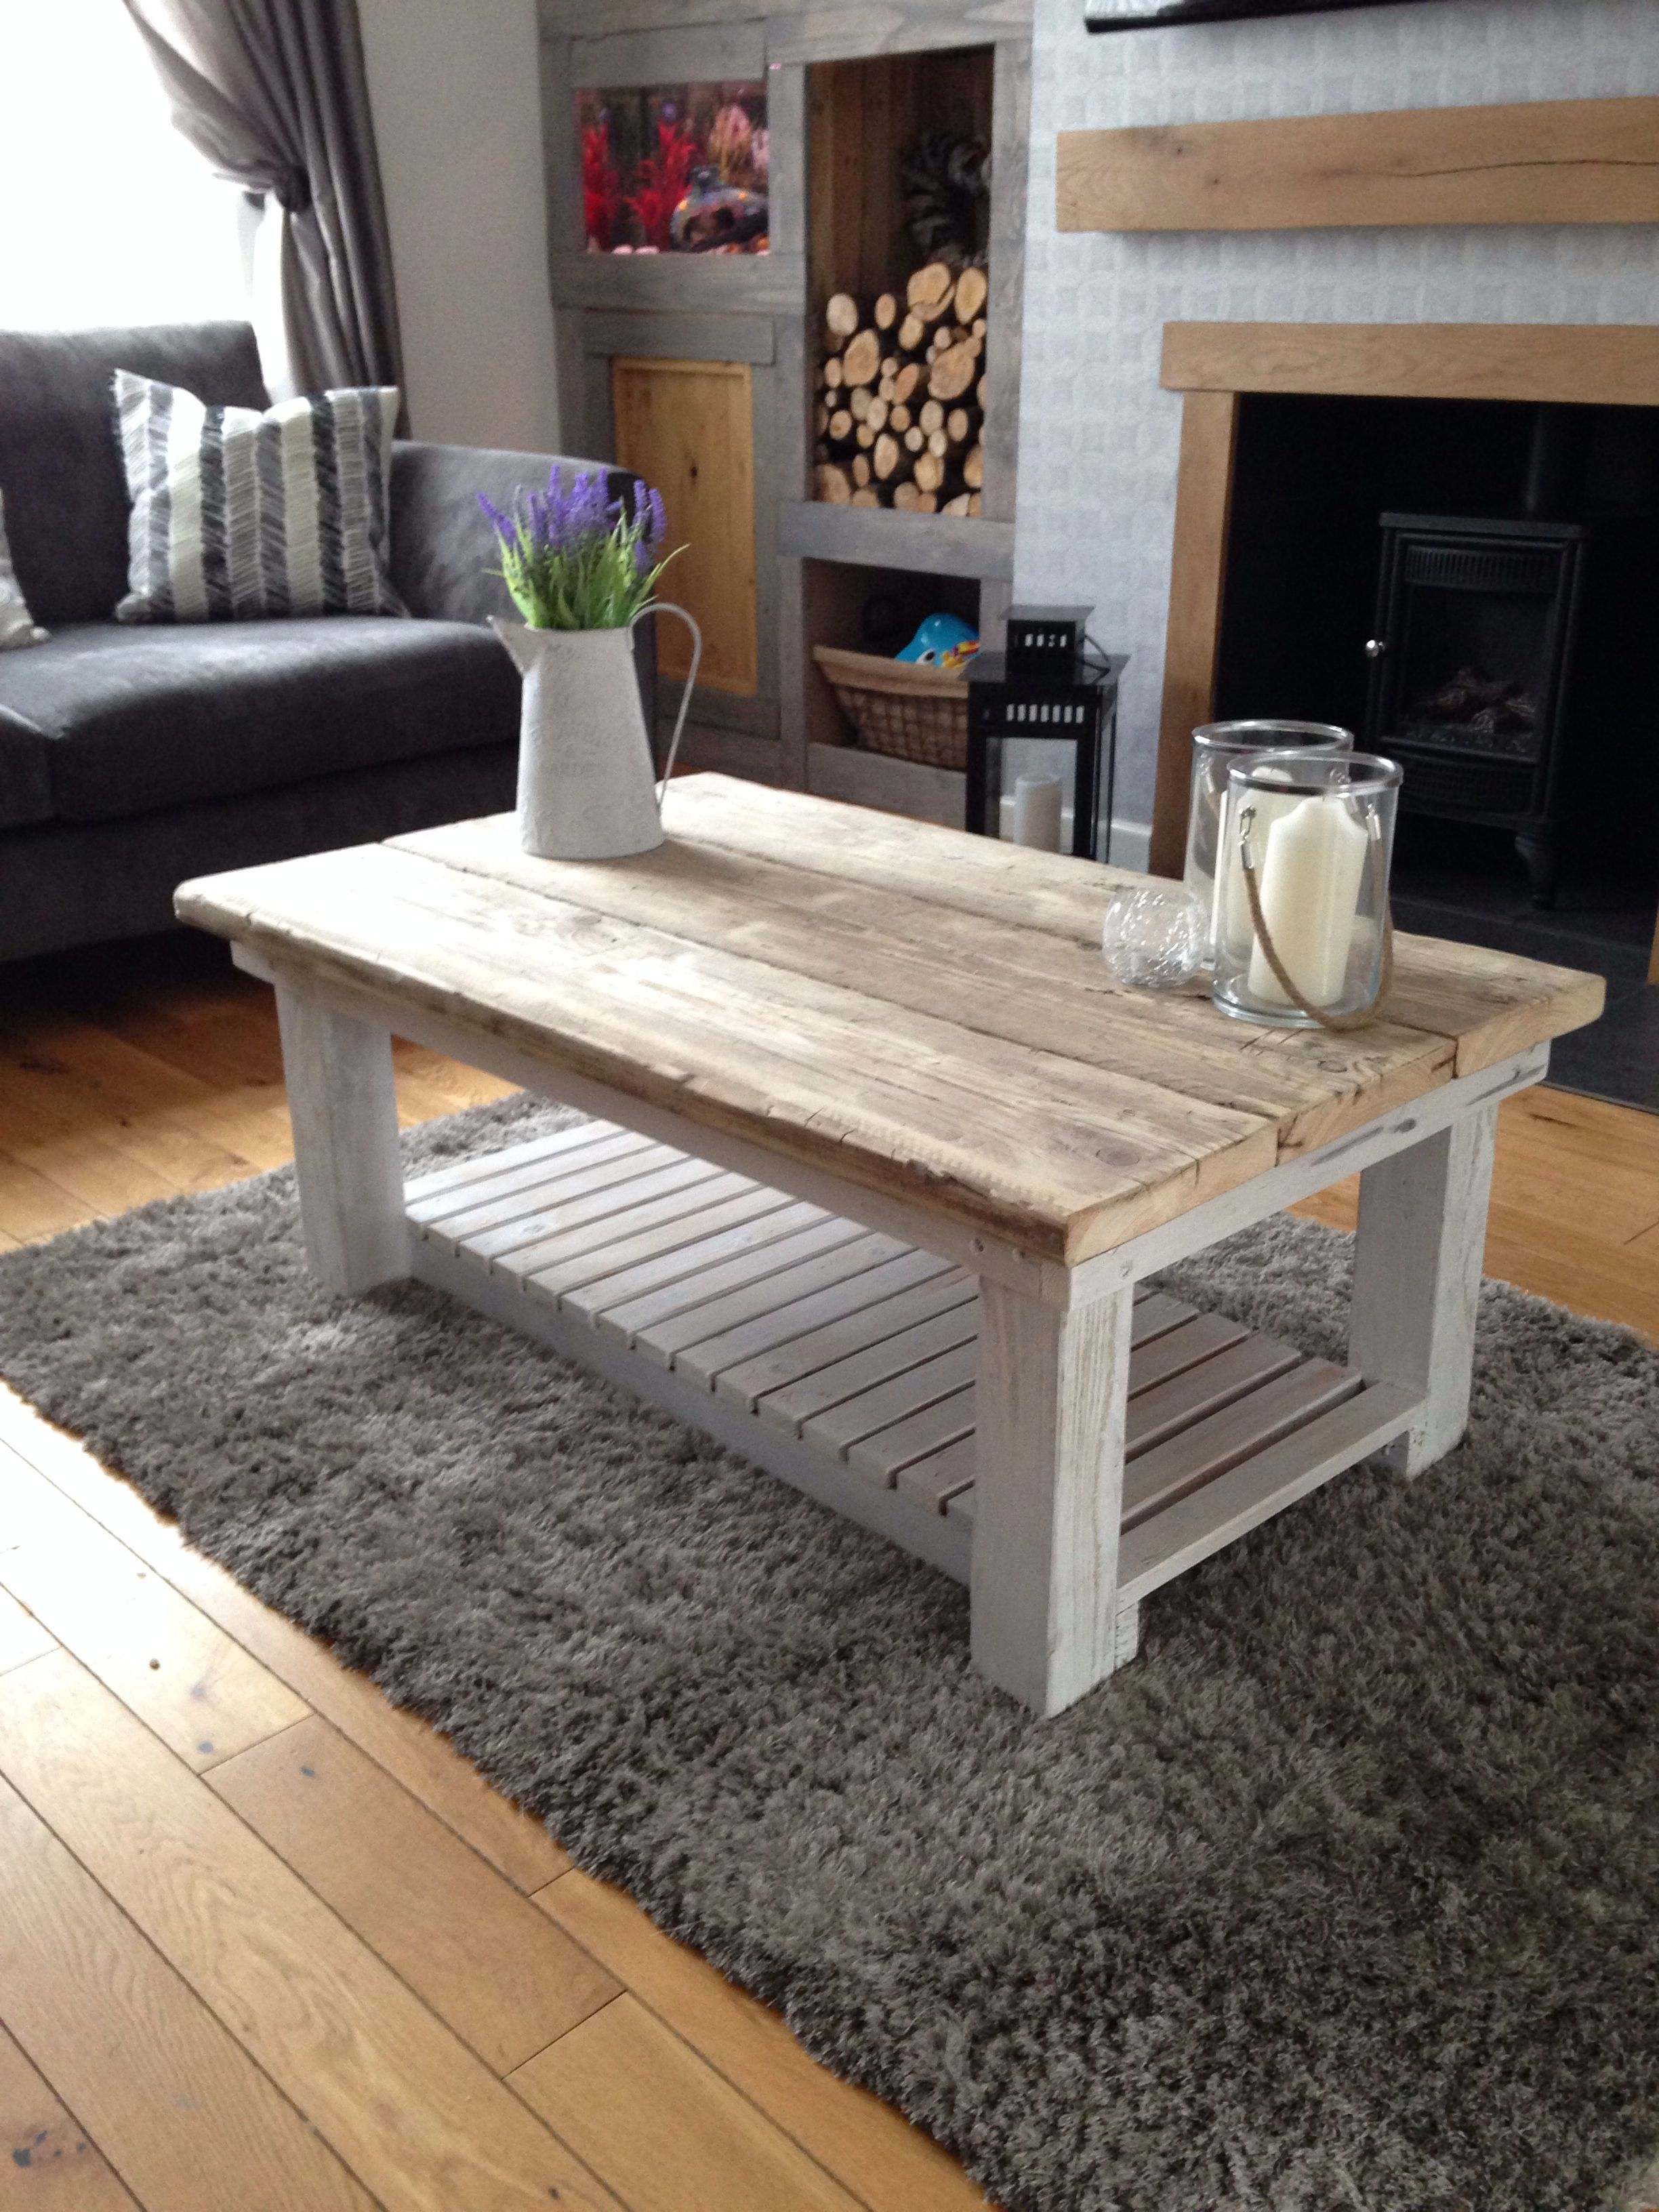 Superior Reclaimed Scaffold Board Coffee Table. Perfect Addition To Any Decor.  Shabby Chic, Industrial